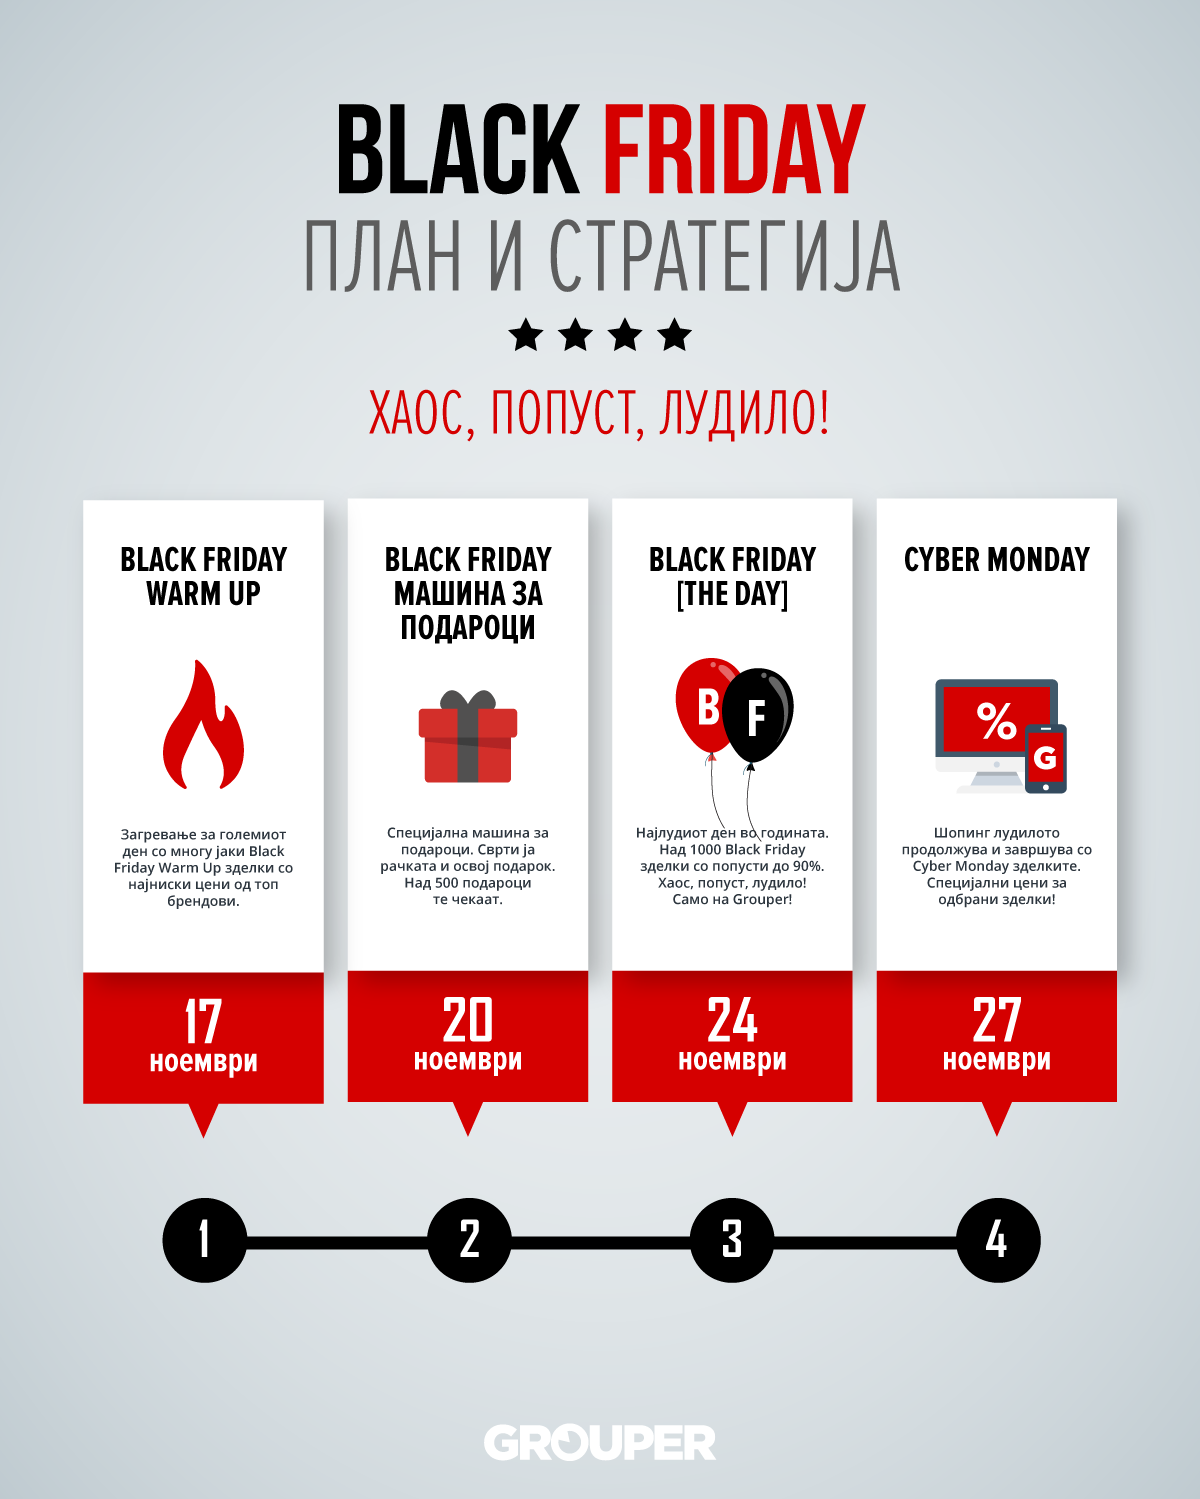 black-friday-plan-i-strategija